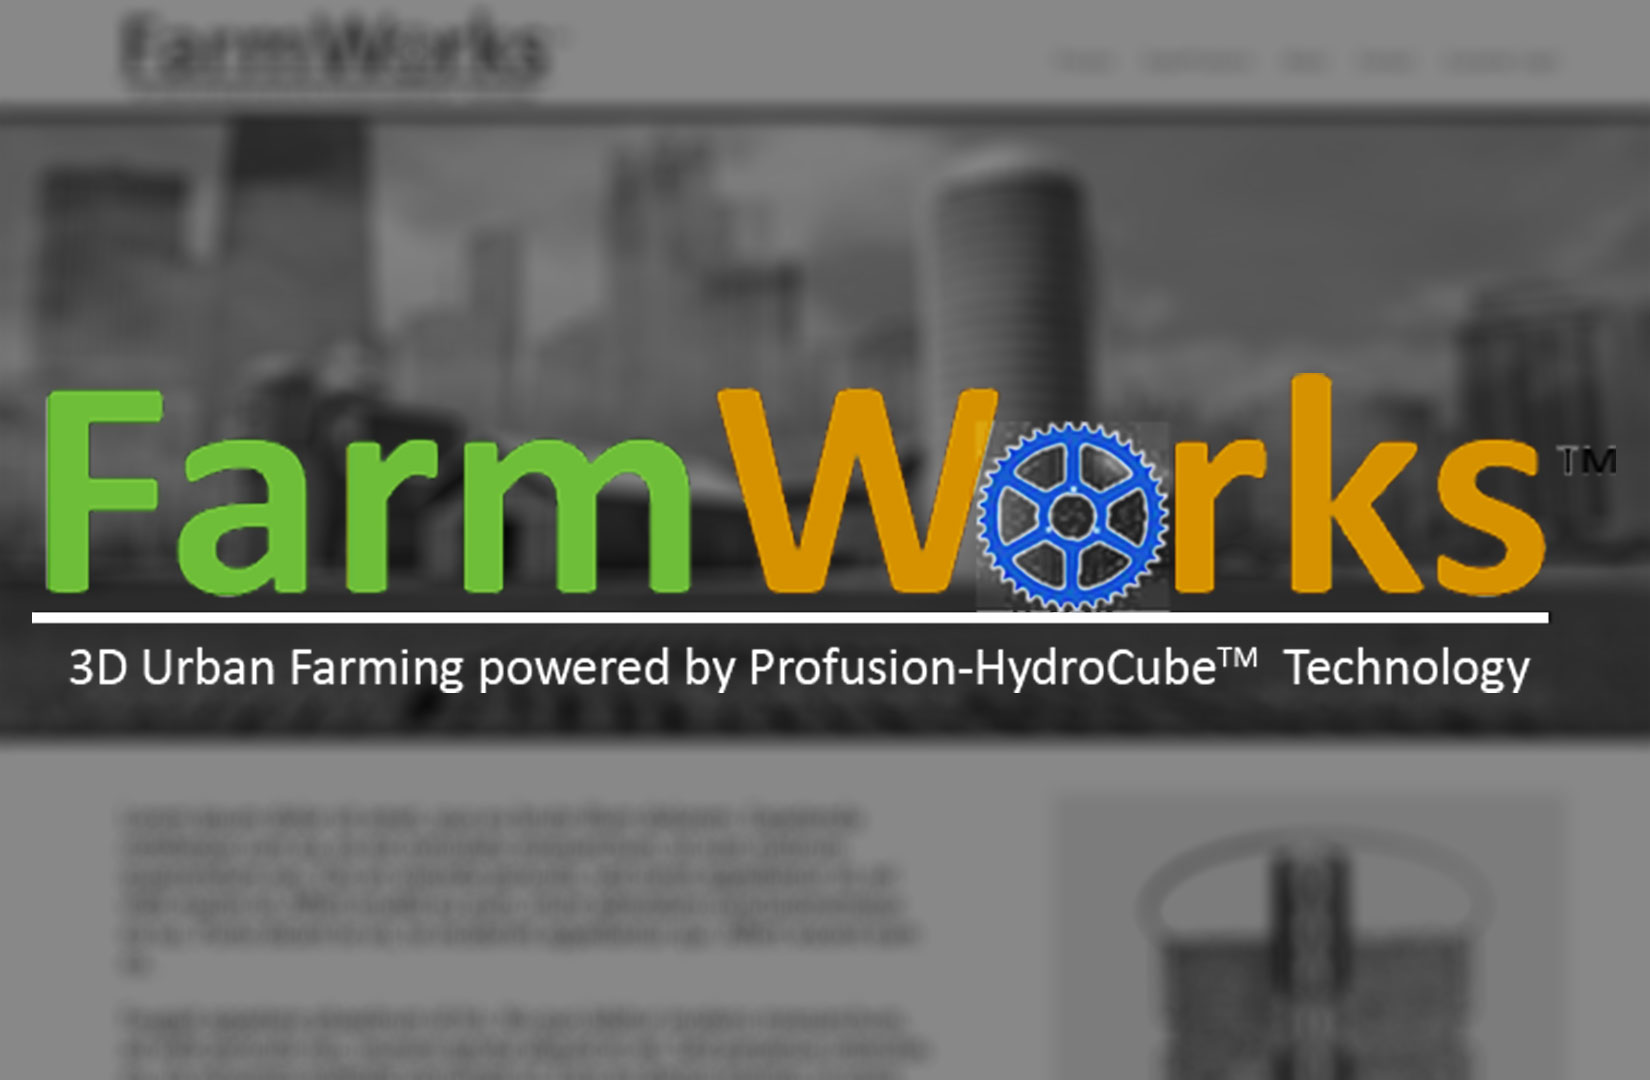 FarmWorks Provides Patented high-density hydroponic technology for Urban Farming | FarmWorks is an EnVision Corporation Environmental Incubator Project